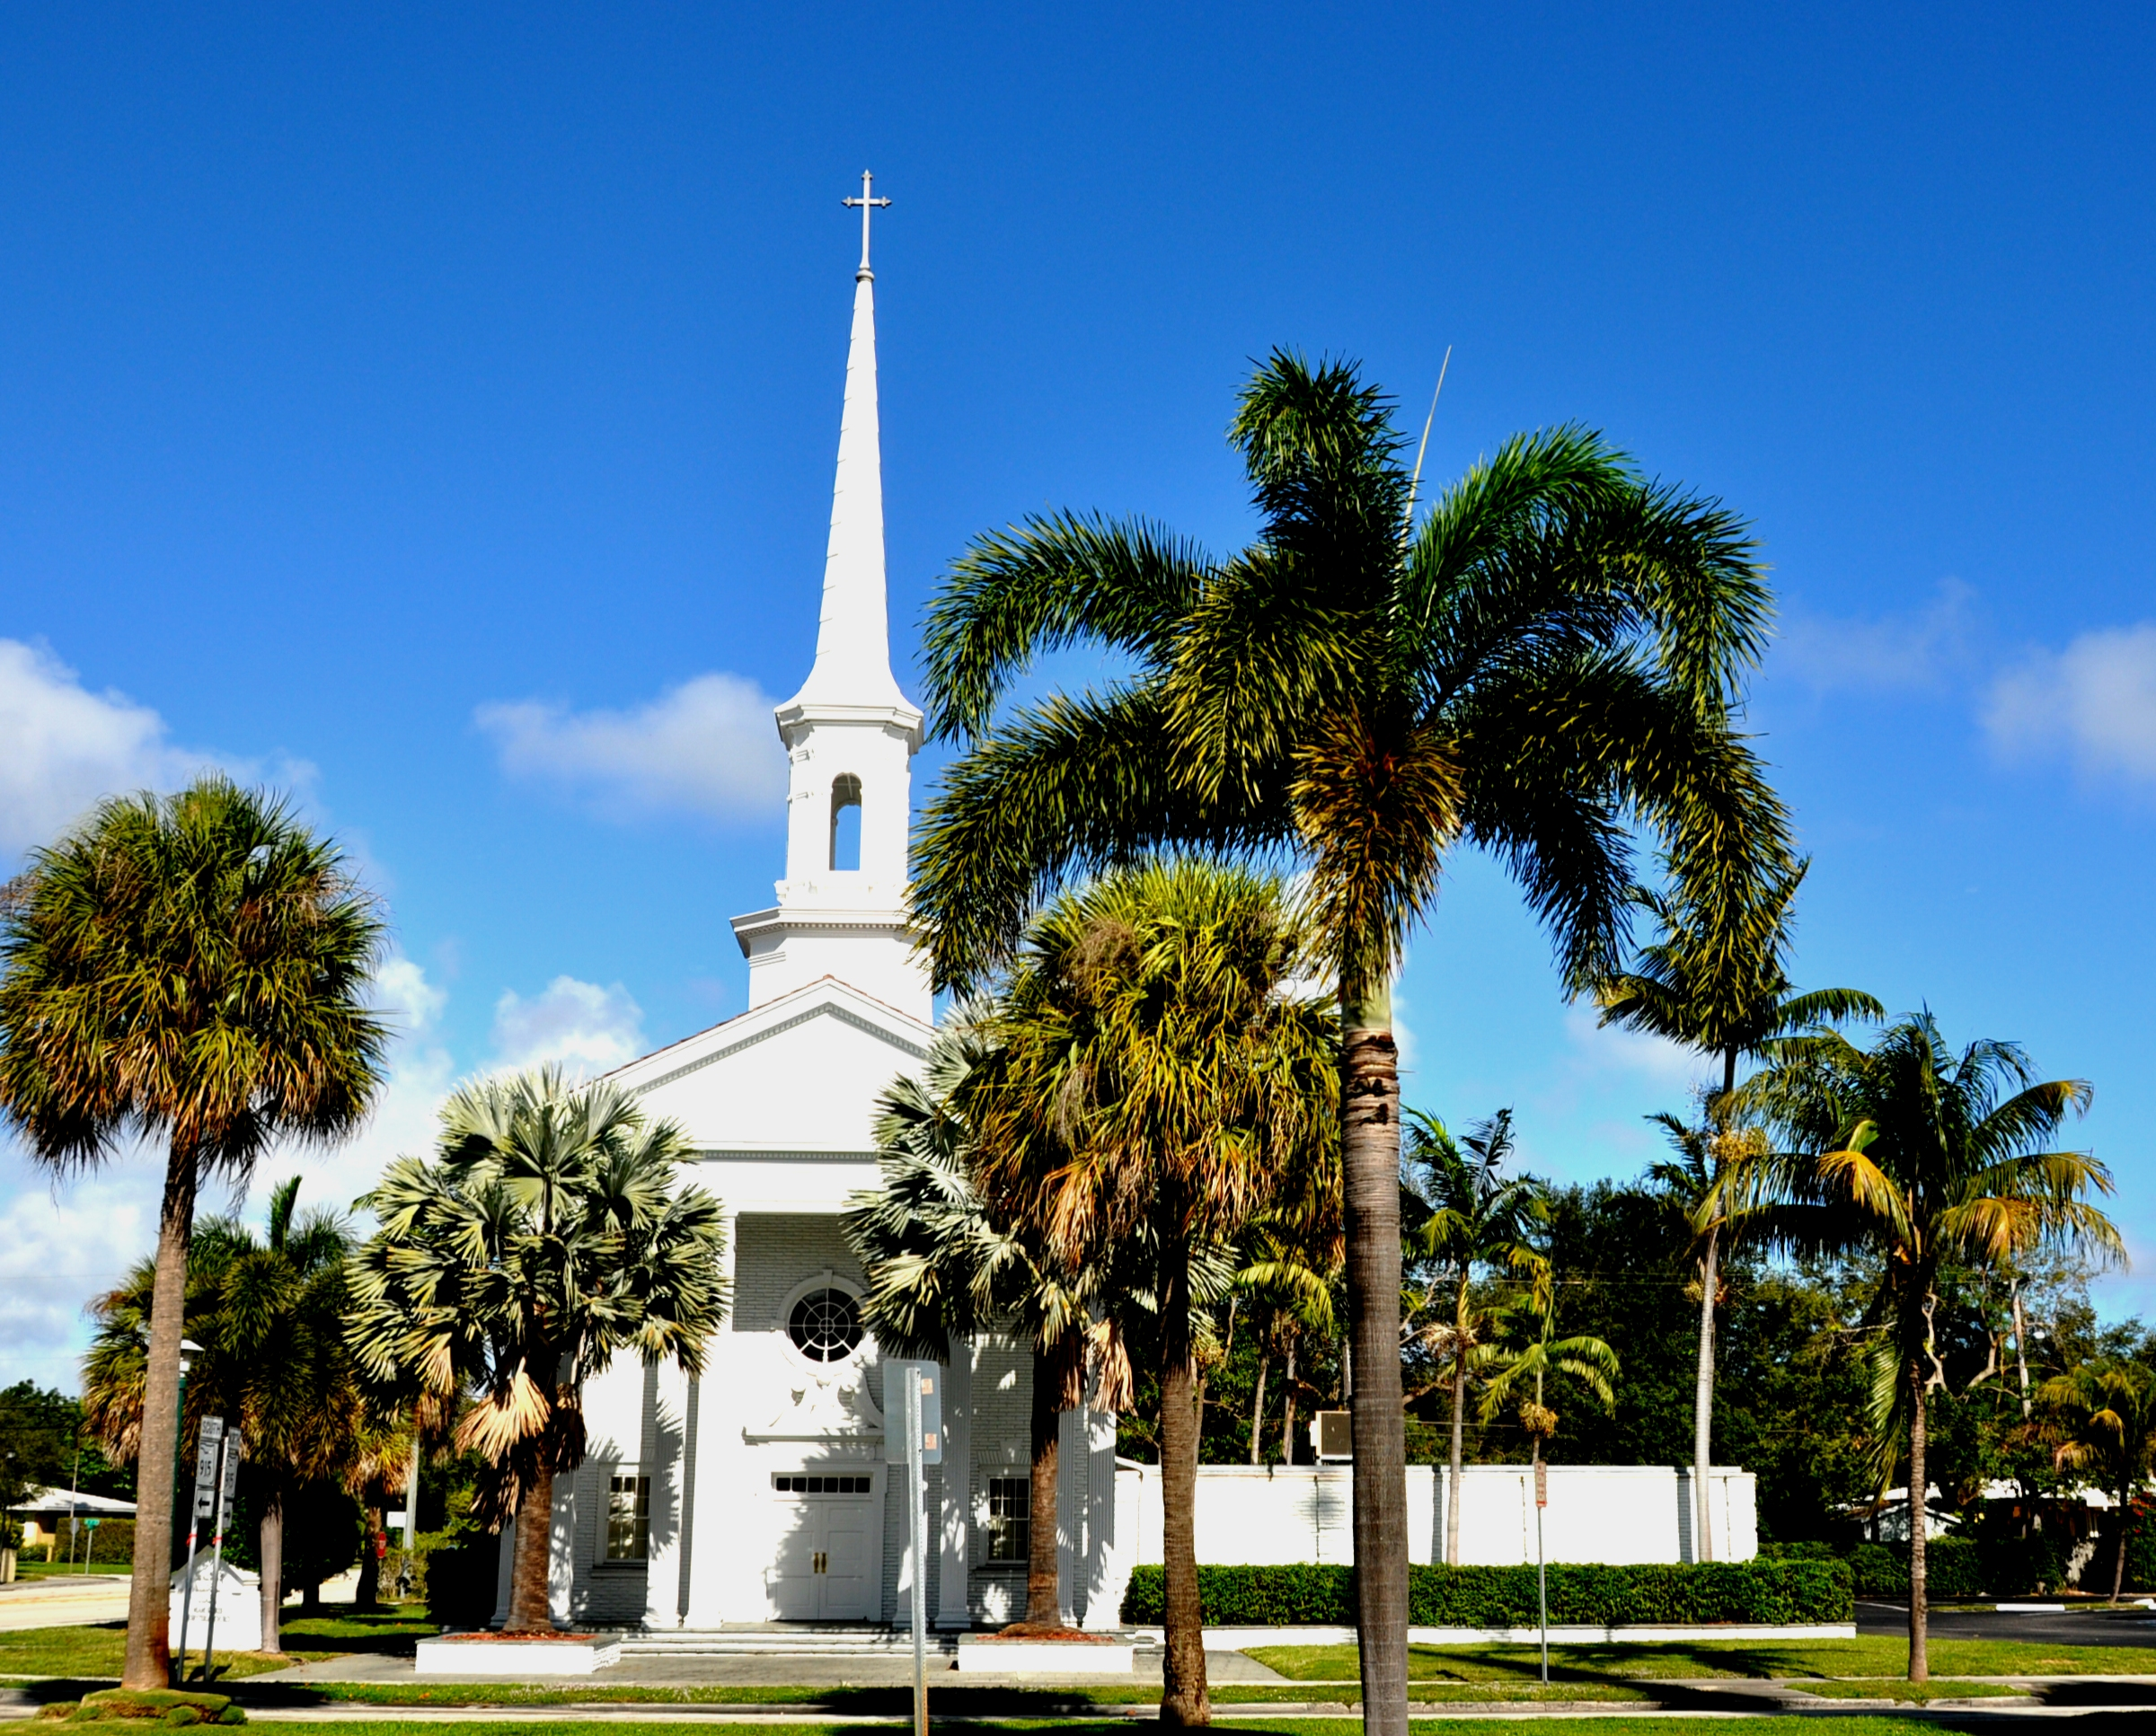 The Miami Shores Community Church